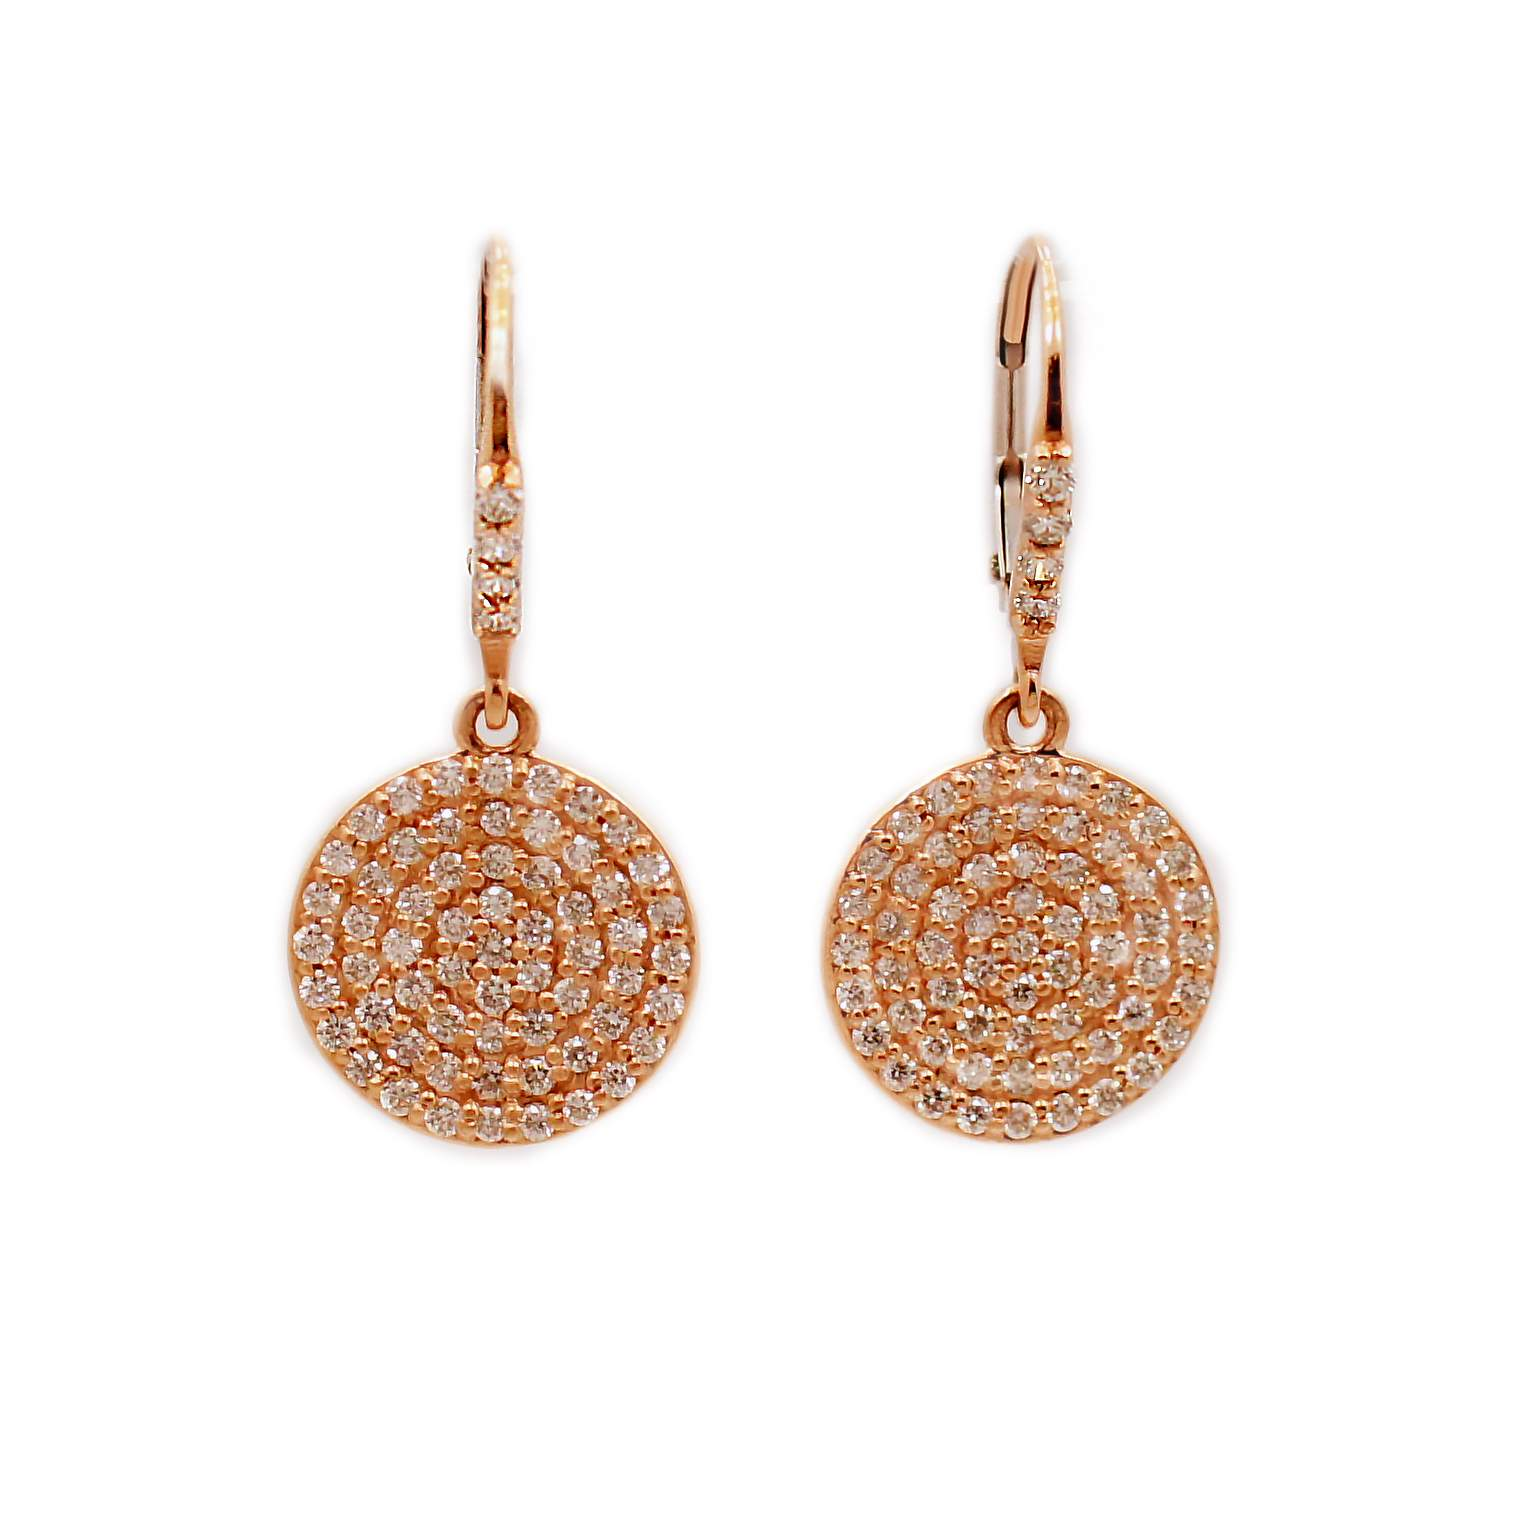 Pave Diamond Disc Earrings In 14k Rose Gold